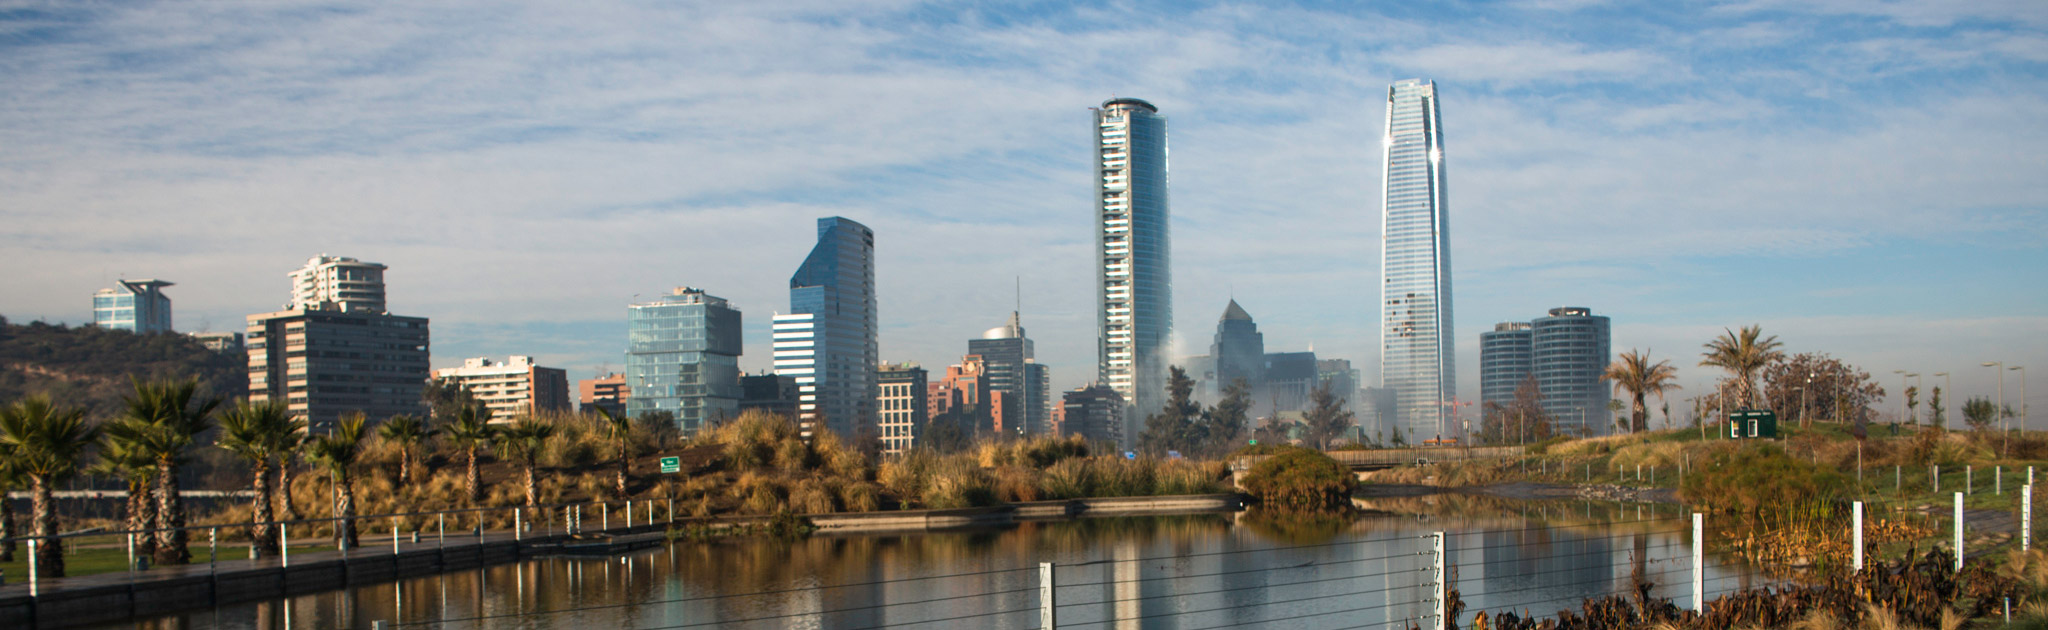 A view of Santiago from Parque Bicentenario